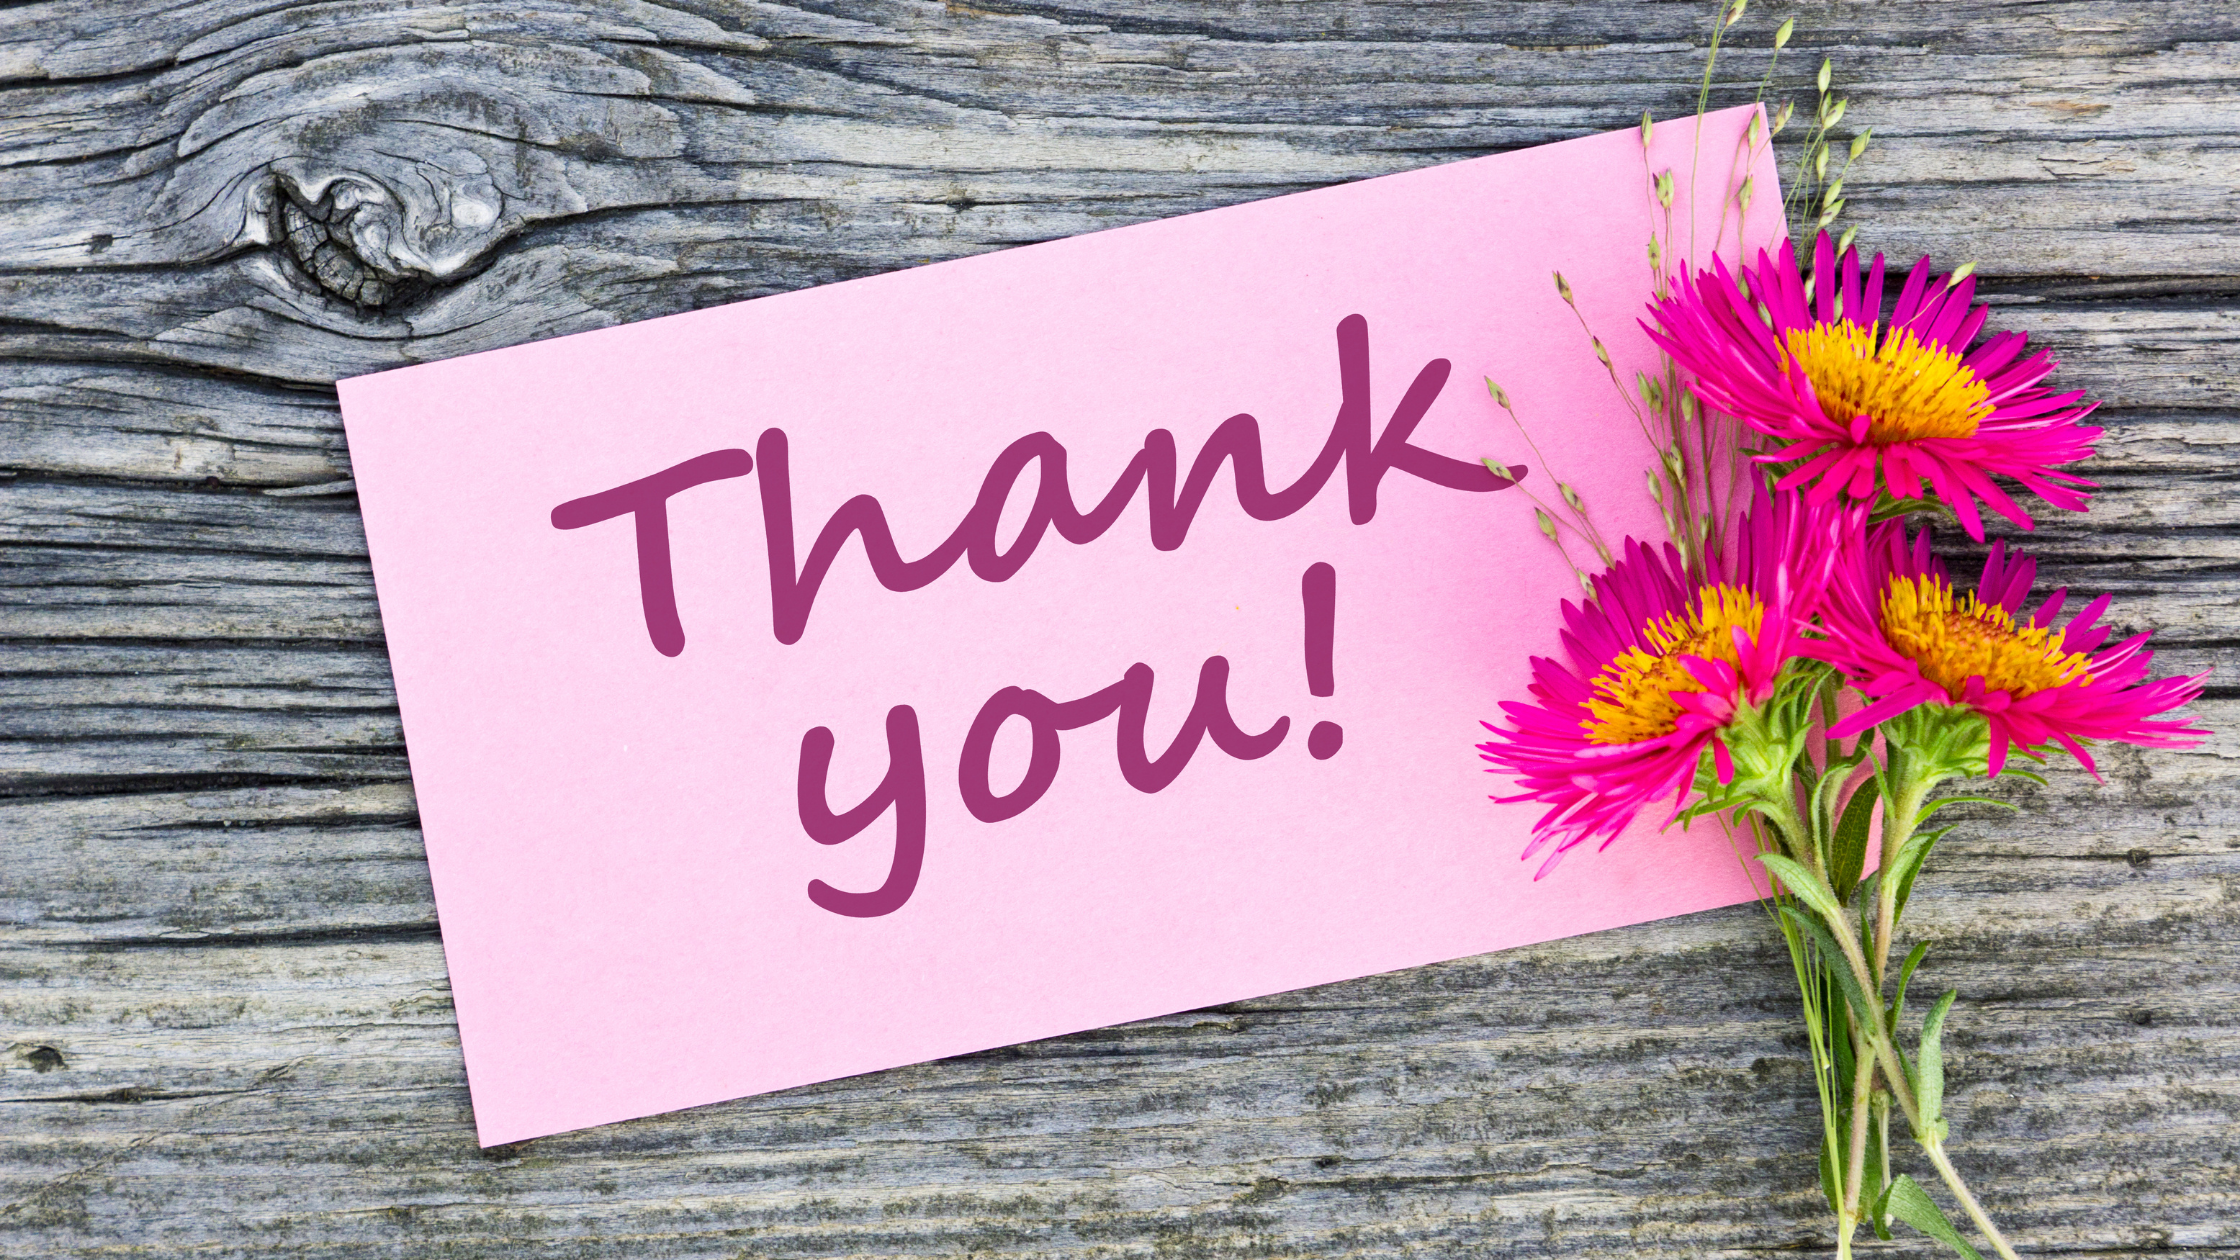 Thanking Your Donors